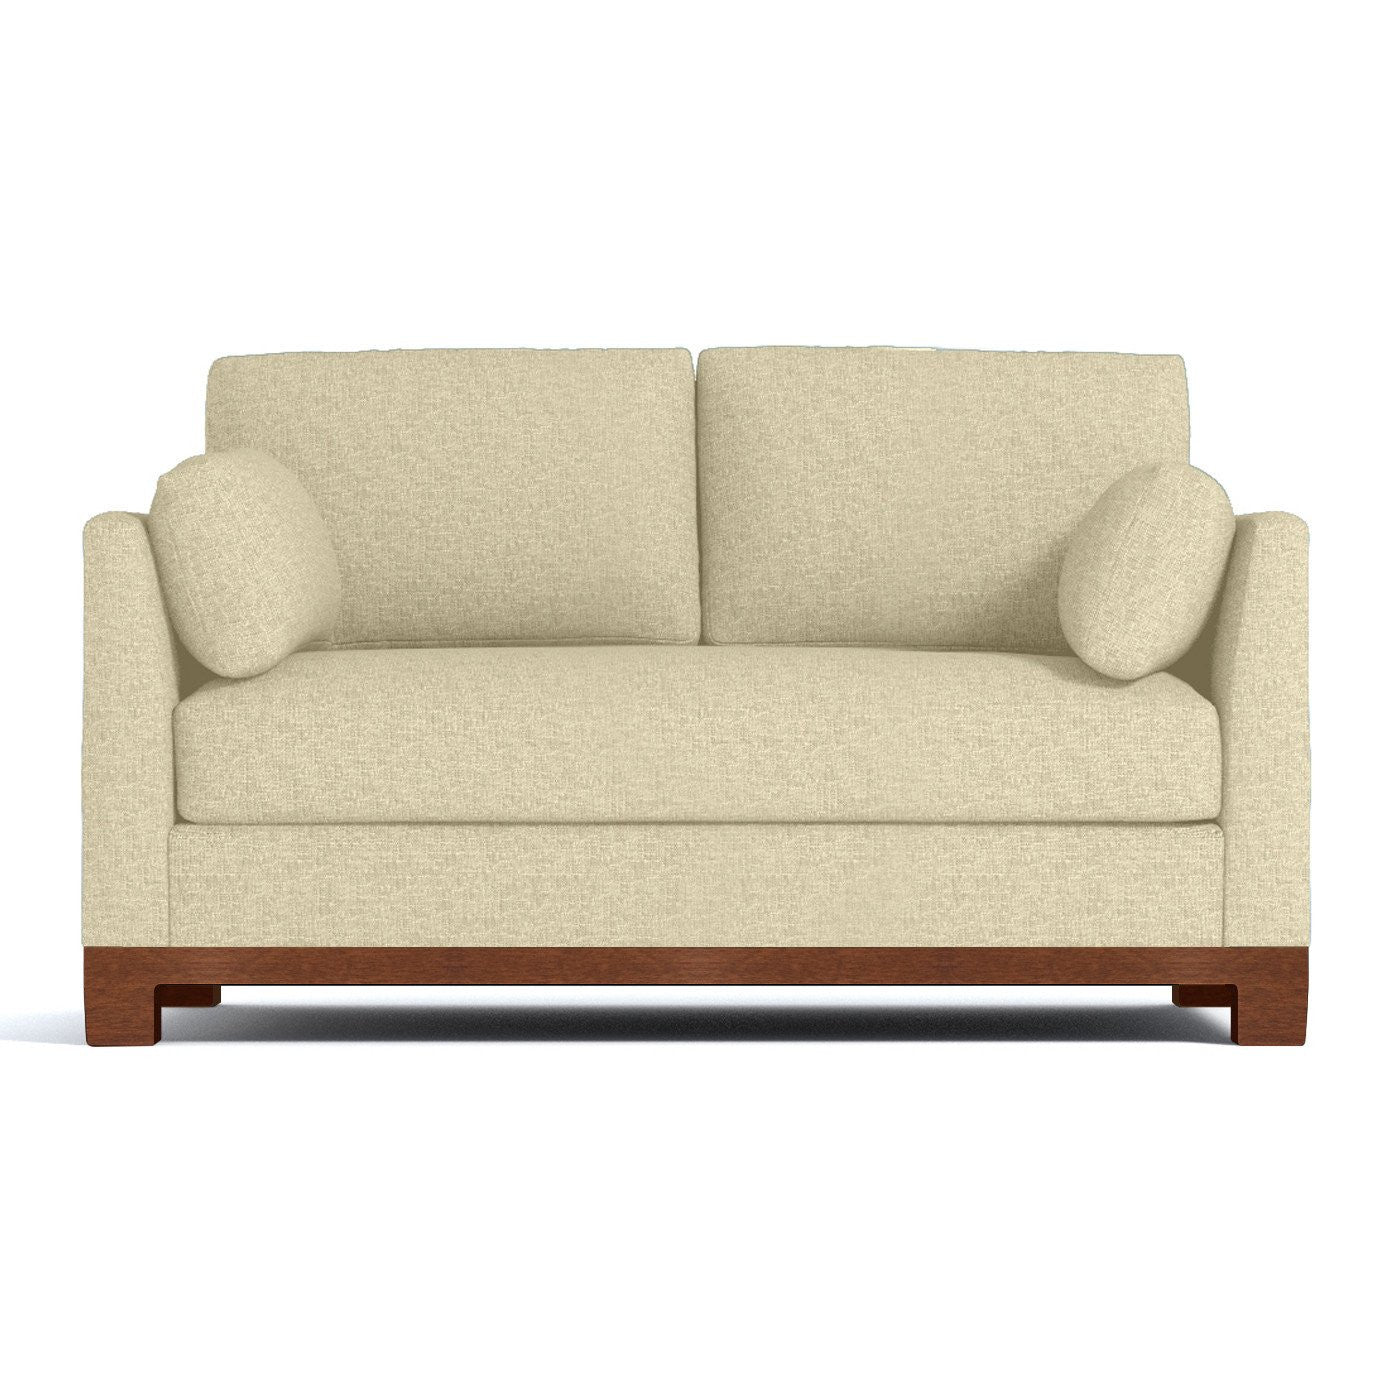 Avalon Apartment Size Sleeper Sofa Choice of Fabrics – Apt2B